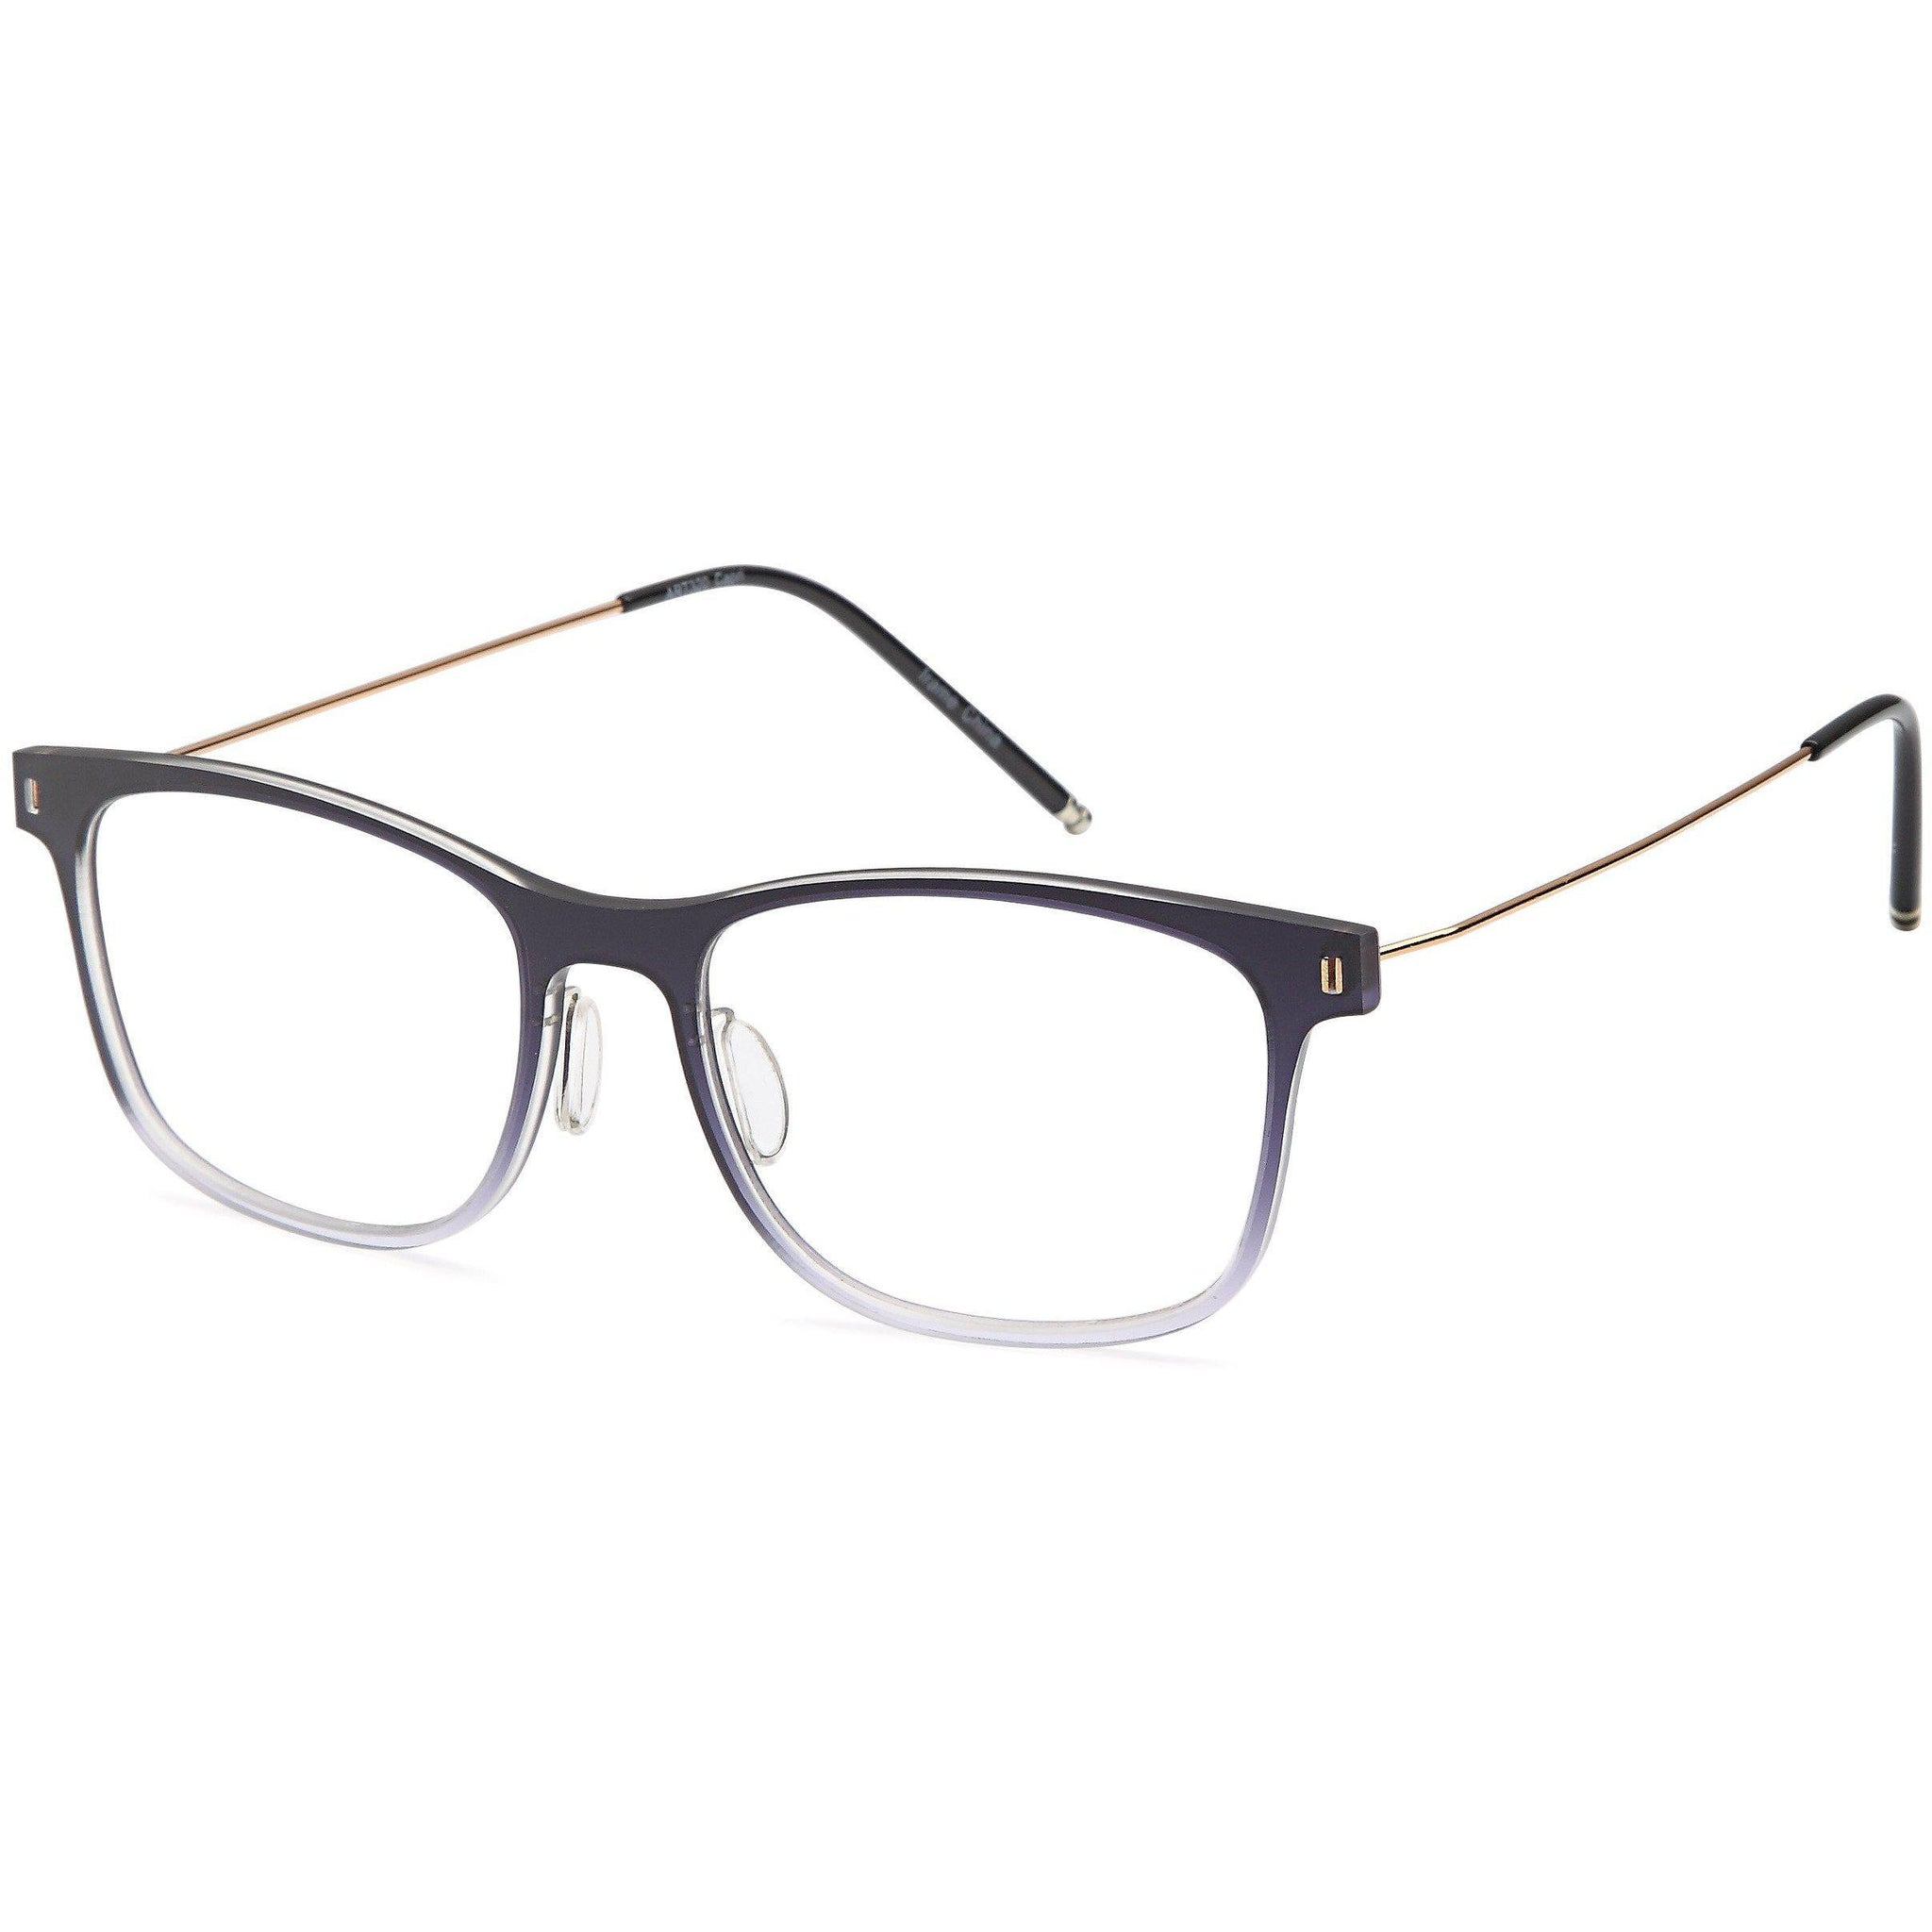 Sophistics Prescription Glasses ART 320 Frame